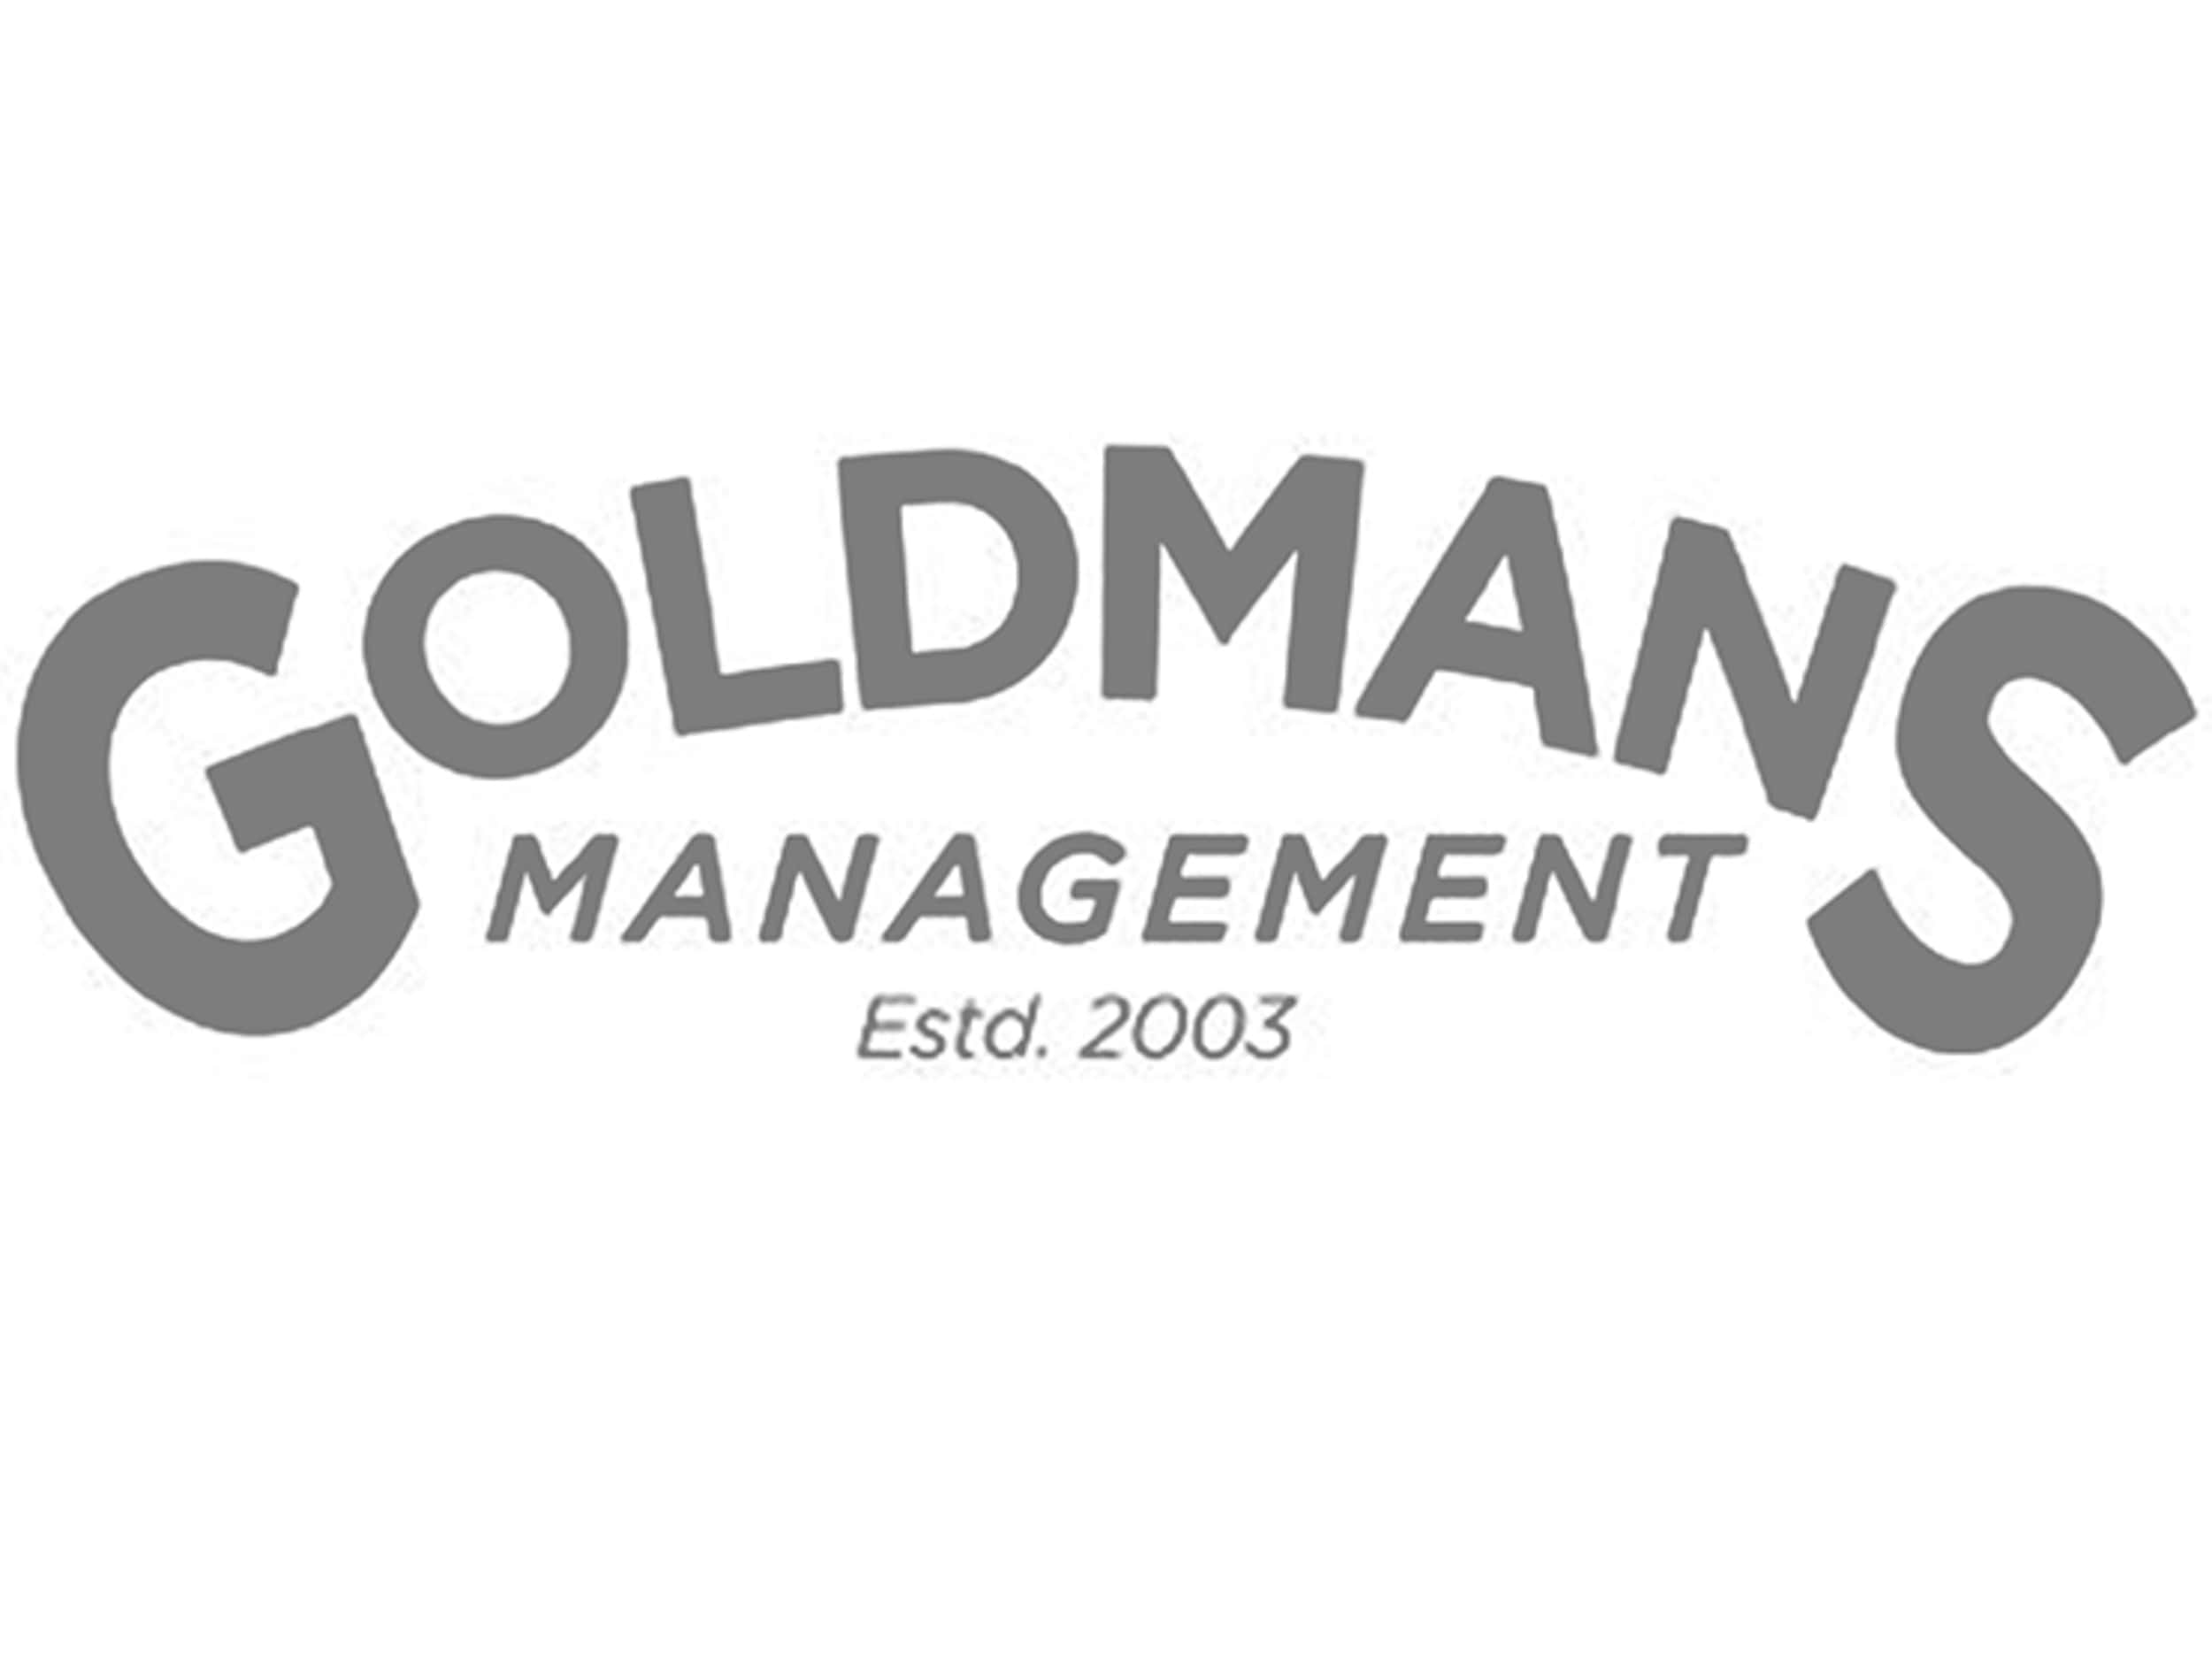 goldmans-management-logo.jpg